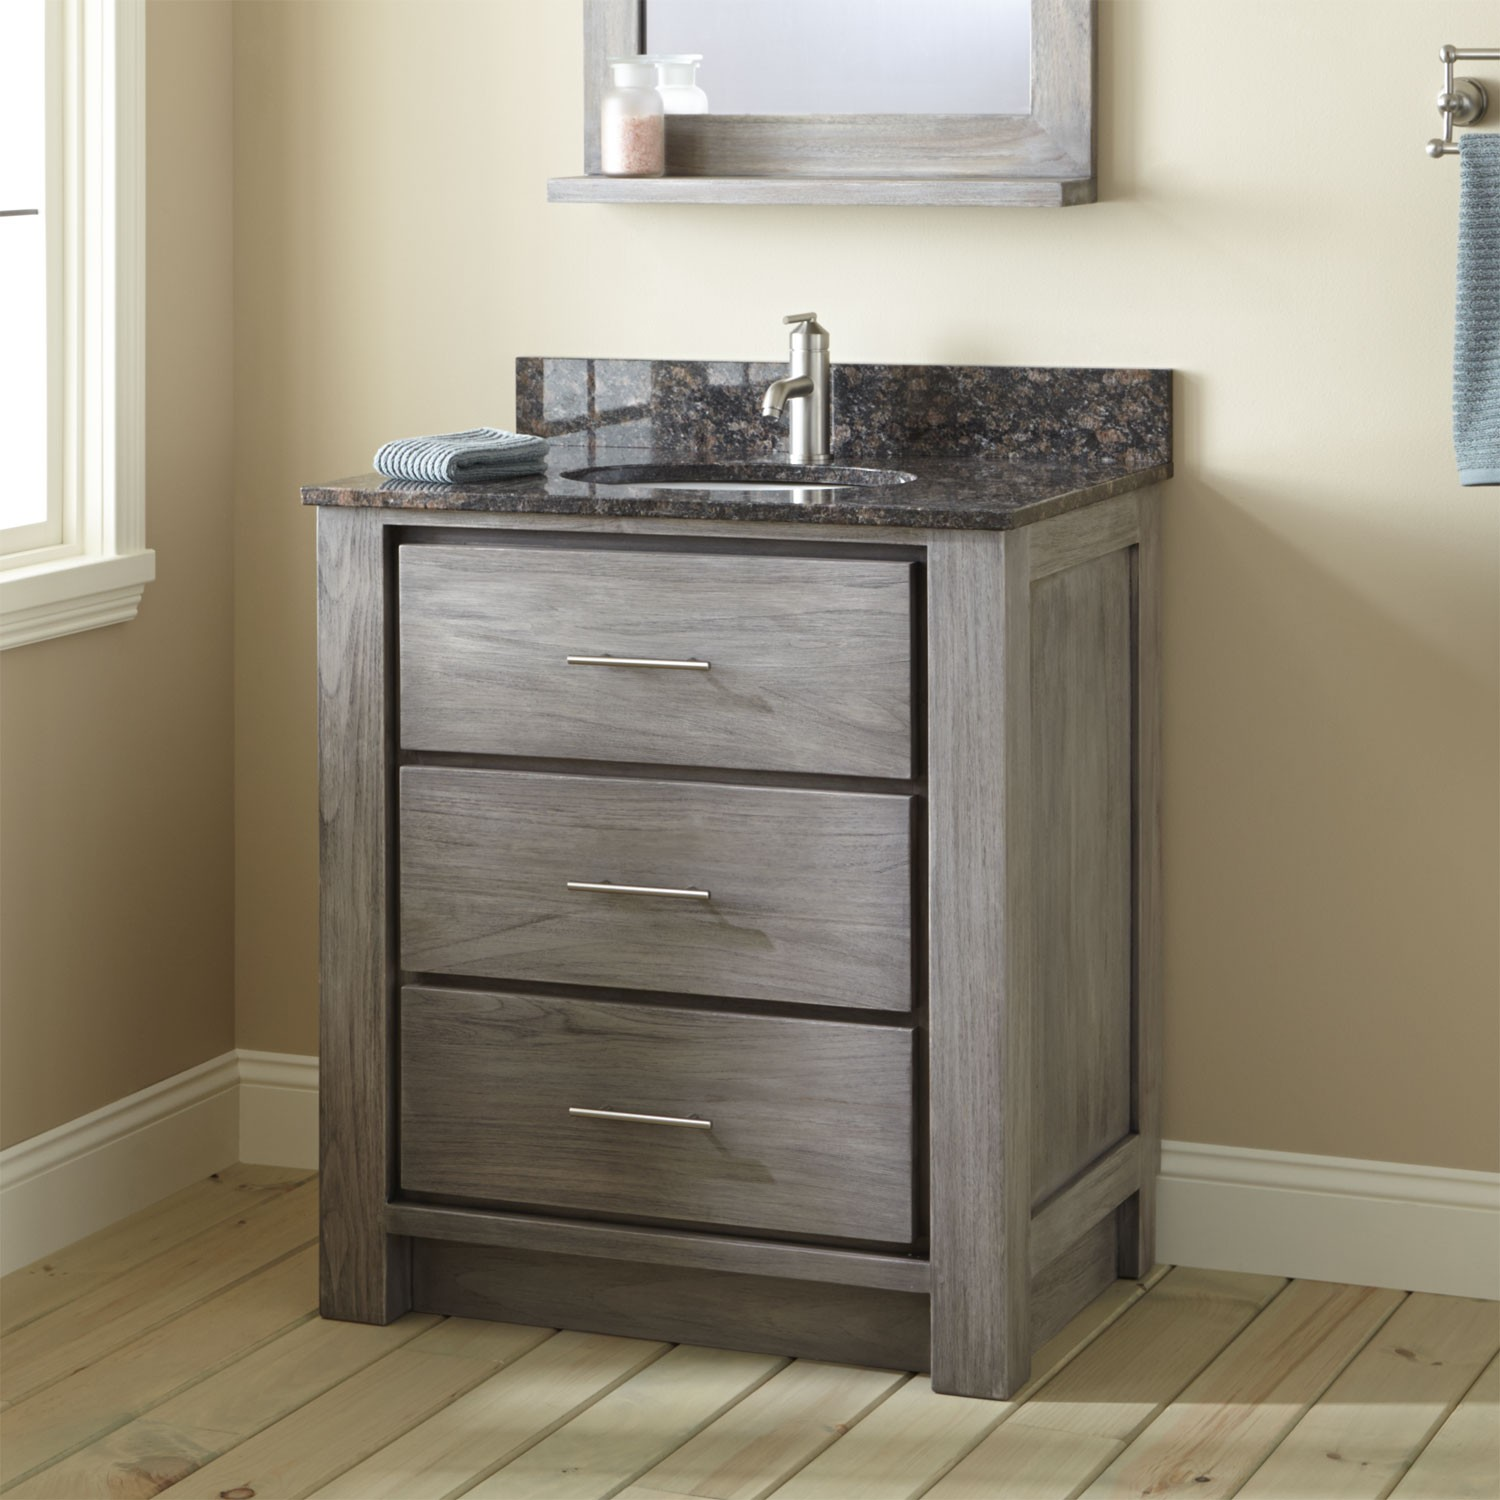 that elegant cooke bathroom amp lewis bodega paolo pack of grey furniture vanity great